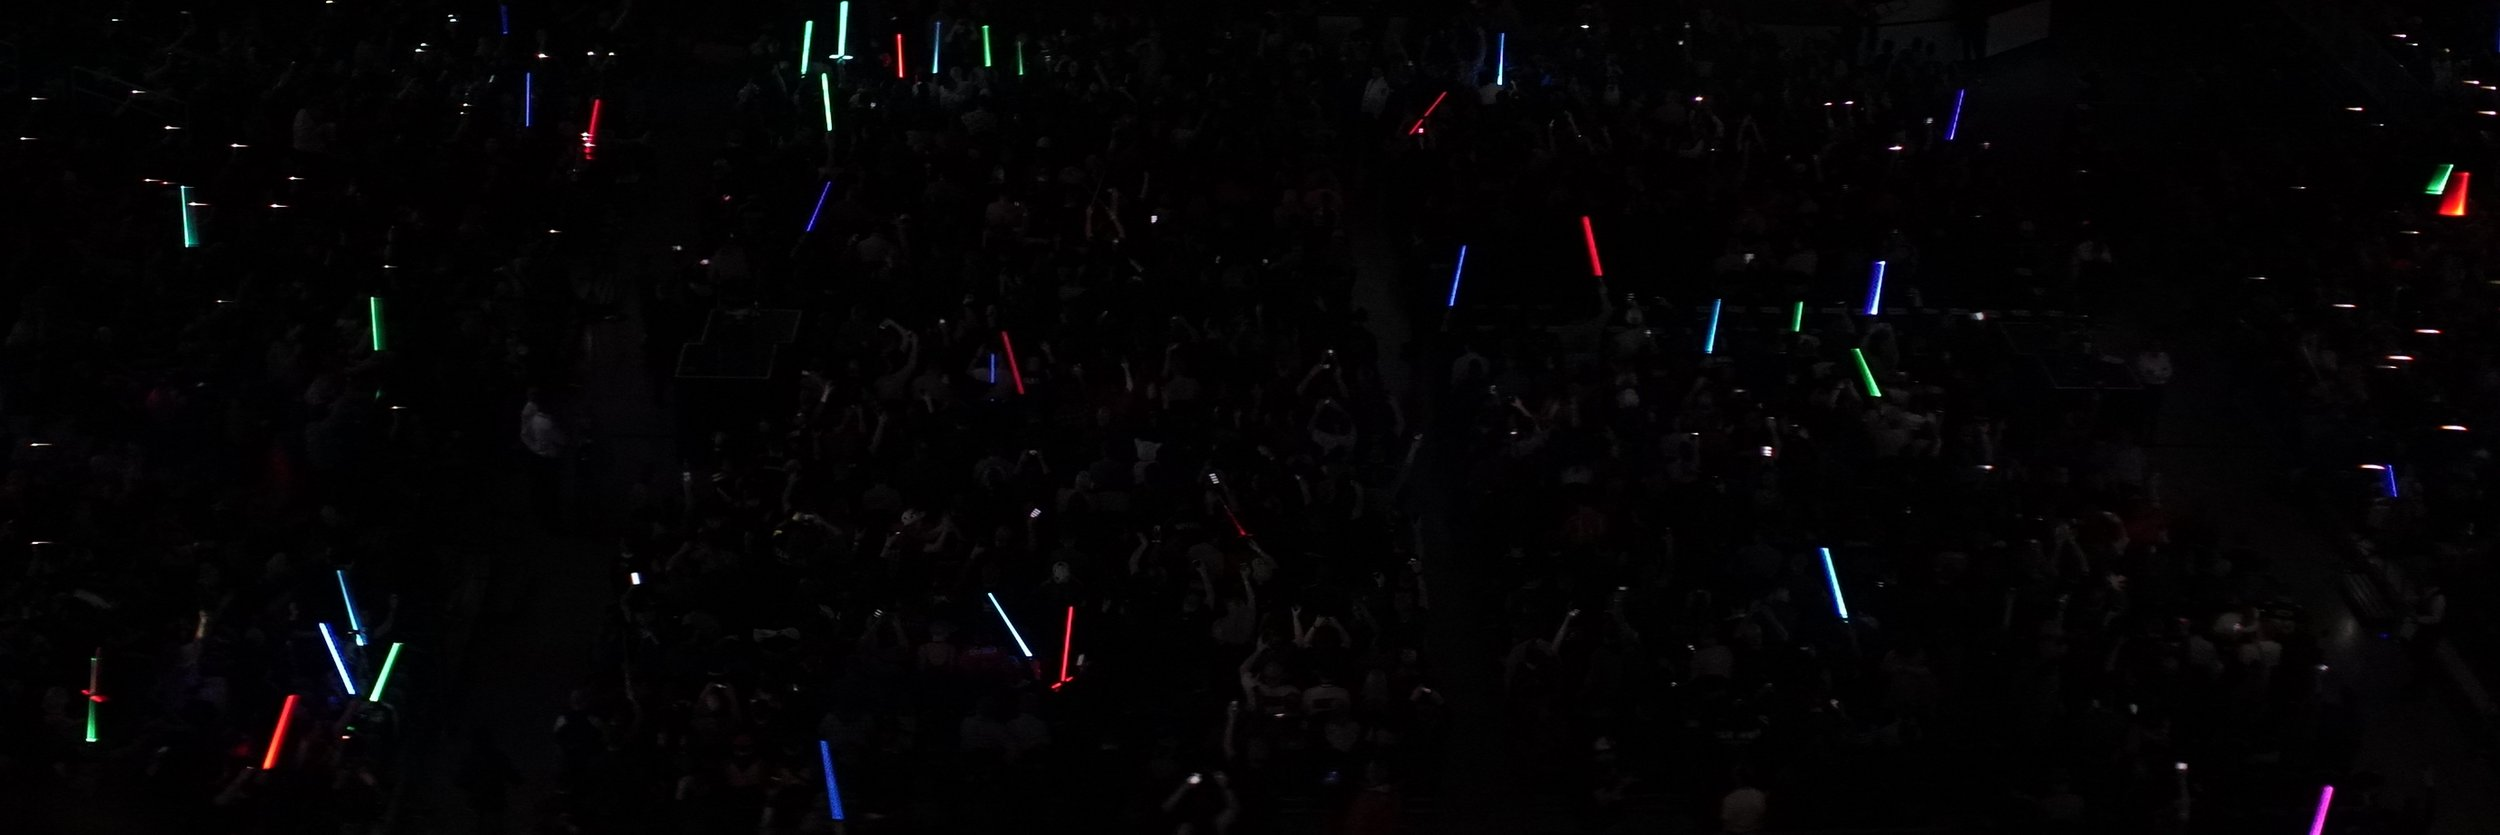 Lomo 75mm Anamorphic Lens | Star Wars Celebration Chicago - SWCC | A crowd filled with lightsabers for The Phantom Menace 20th Anniversary panel at the Wintrust Arena, McCormick Place Chicago, IL - Photo by: Keith Nickoson